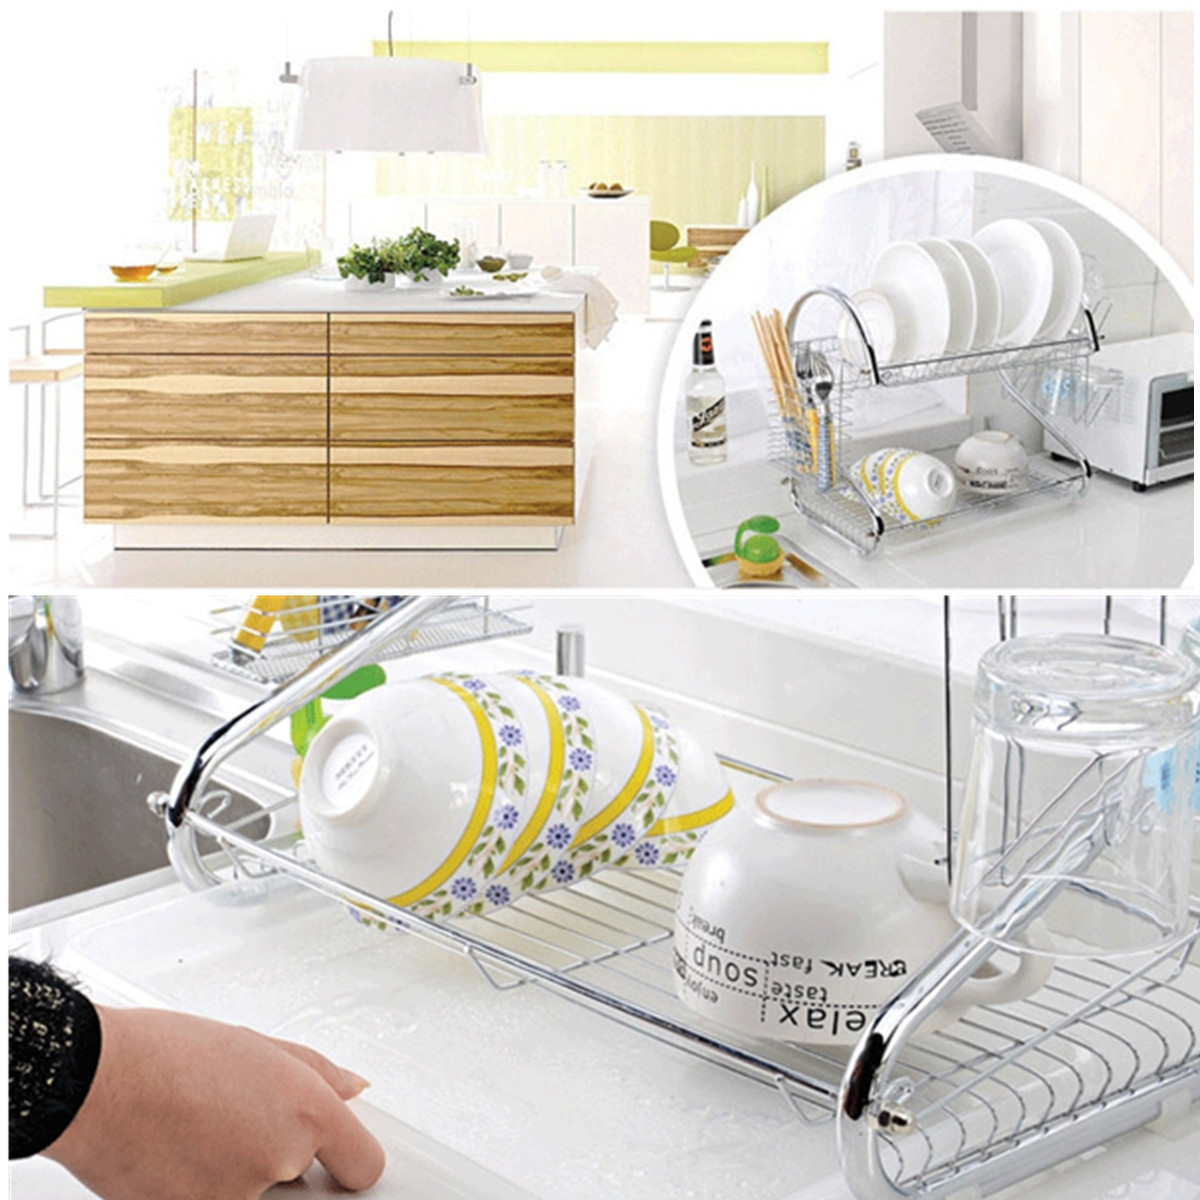 Dish Drying Rack Holder S Shaped Home Kitchen Bowl Cup Chopstick Sink  Drainer 2 Tier Dryer Stainless Steel MATCC US   Walmart.com